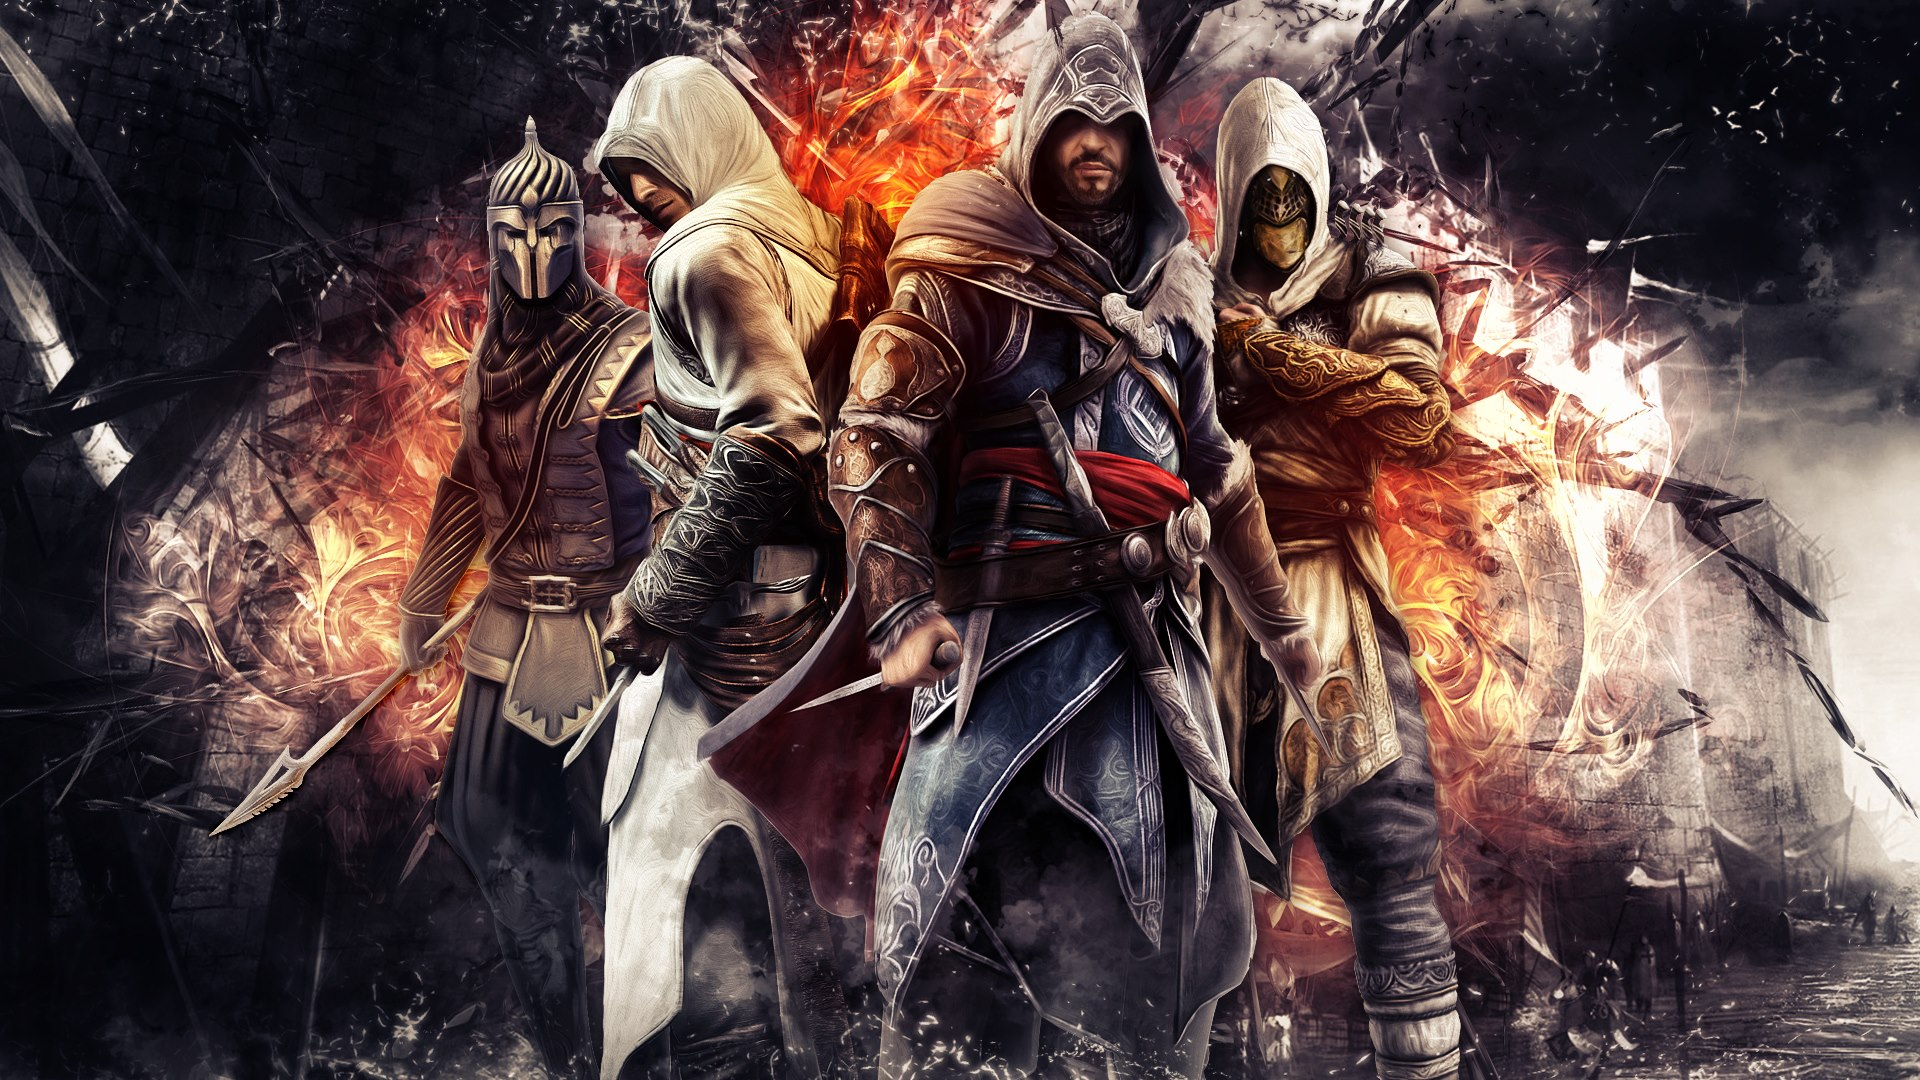 Creed Ezio Altair Wallpaper Hd Imagens Do Assassins Creed